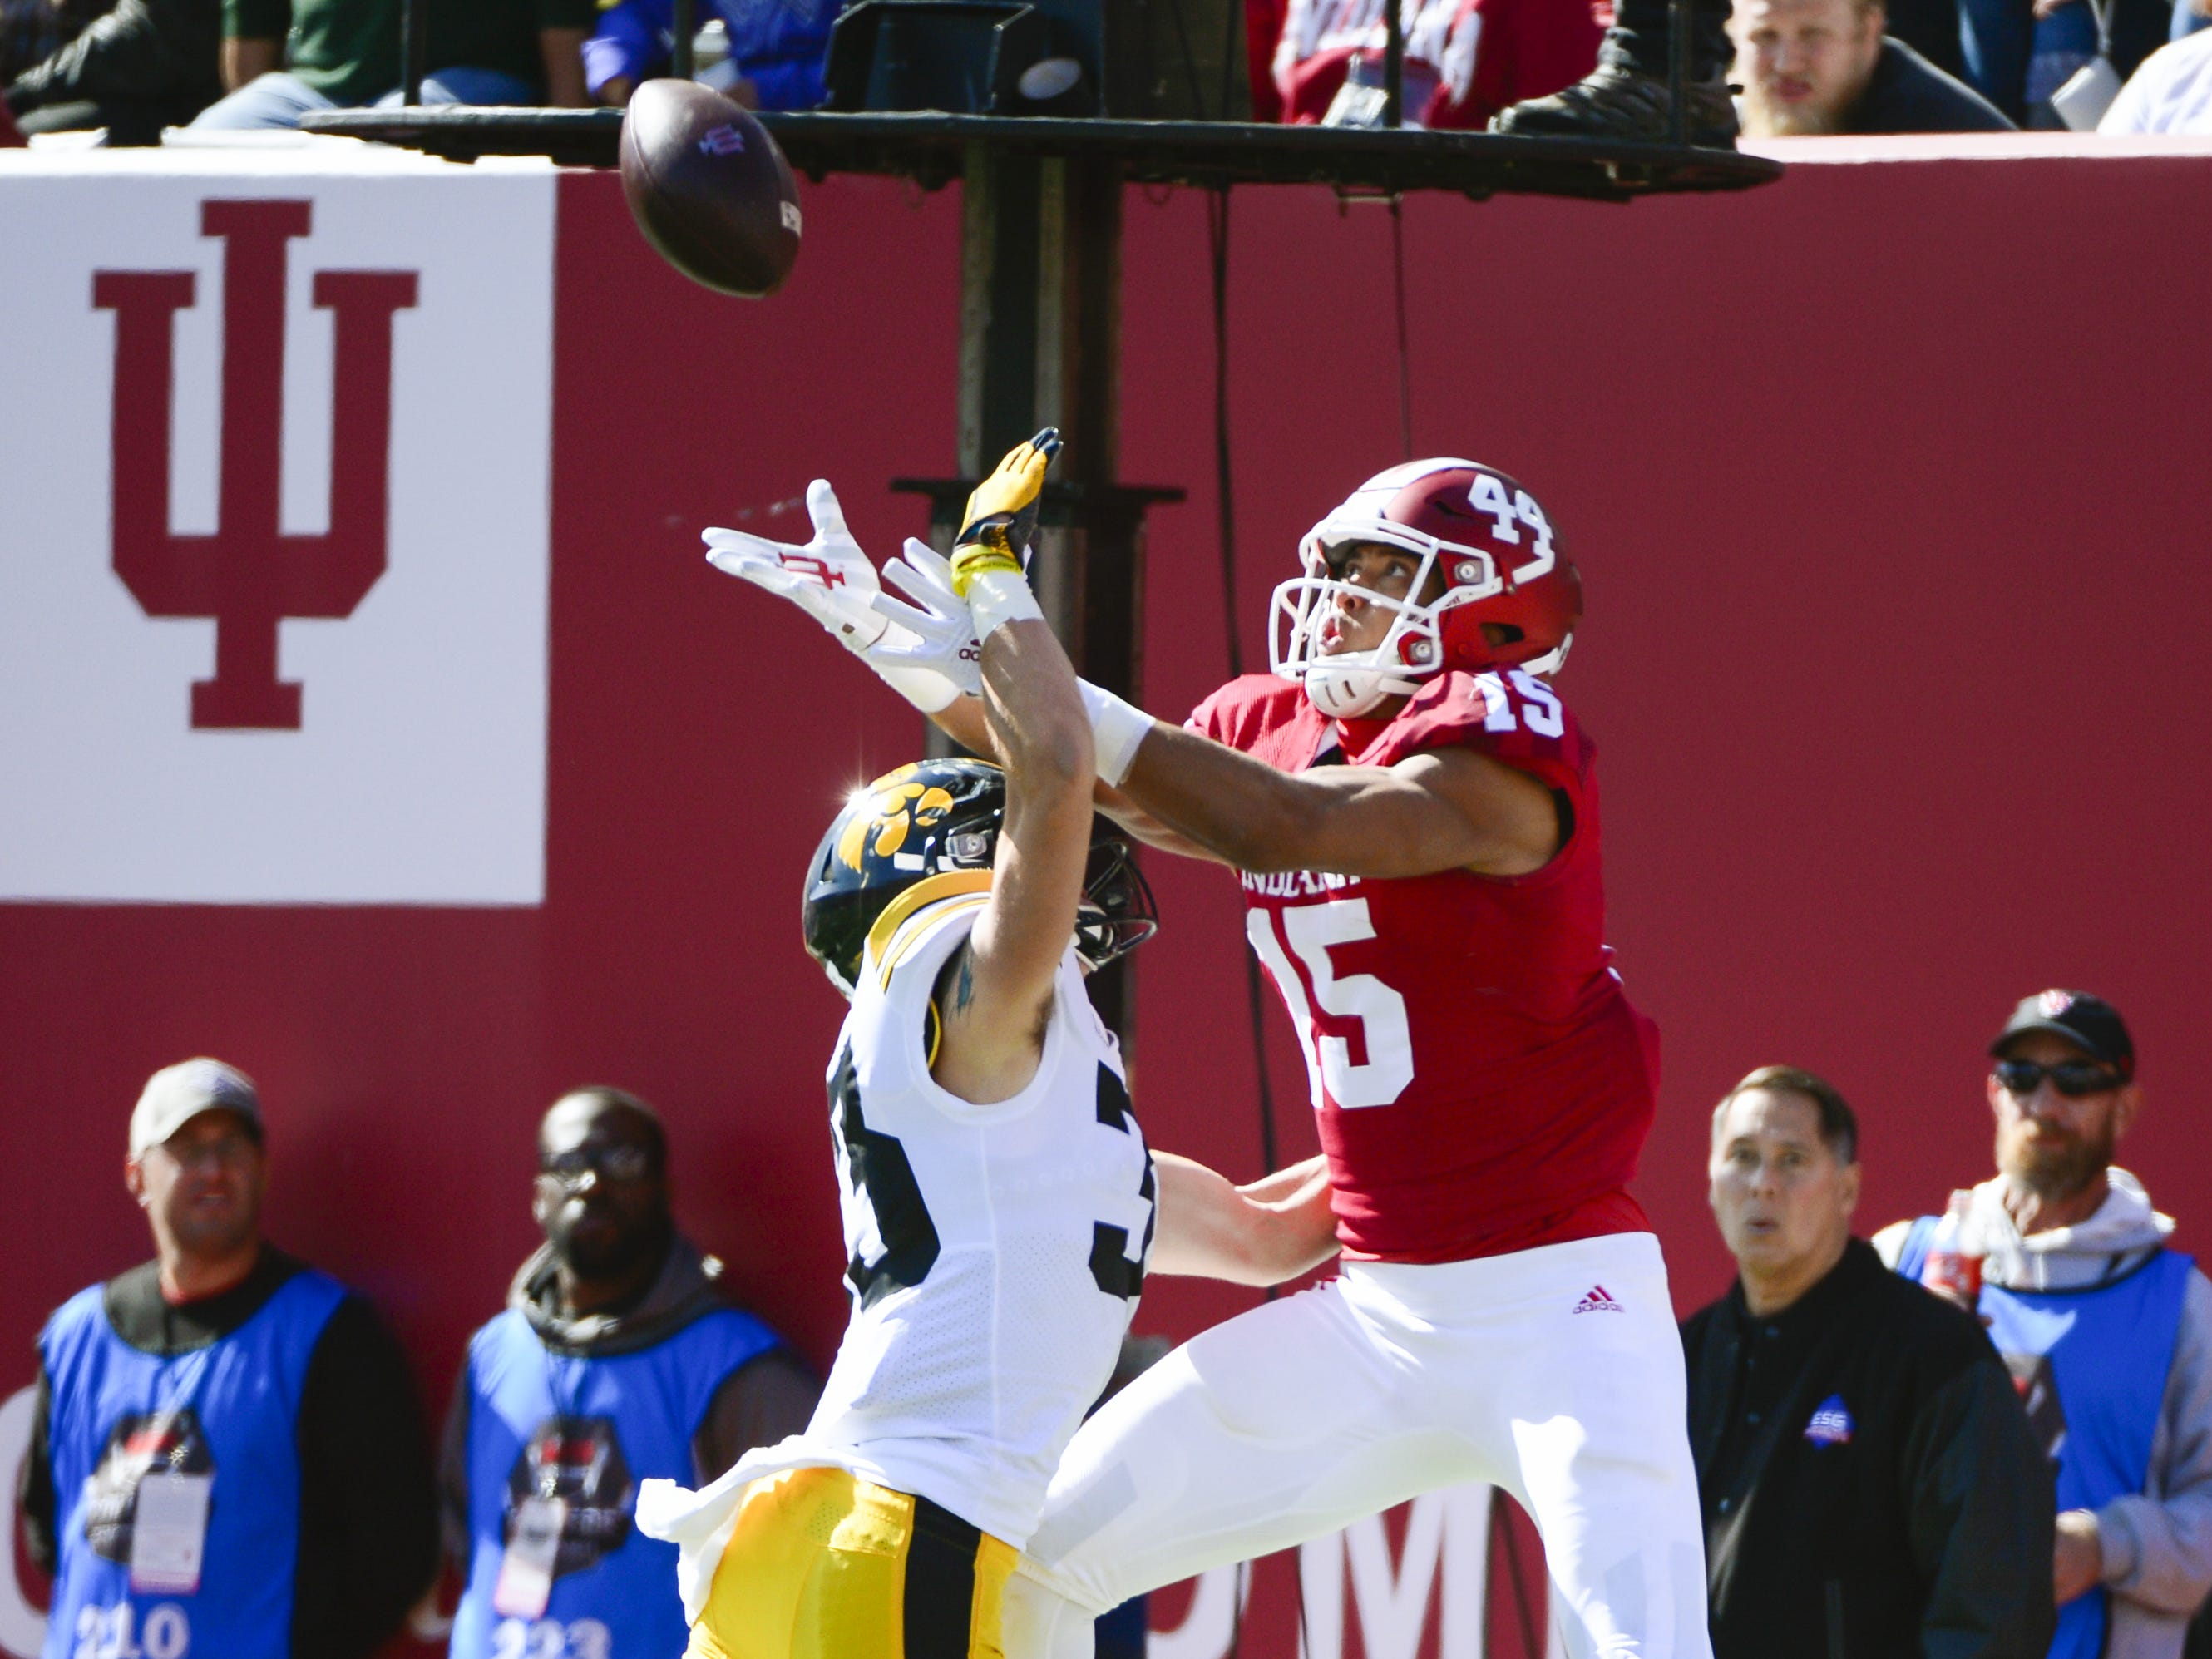 Indiana Hoosiers wide receiver Nick Westbrook (15) attempts to catch a pass against Iowa at Memorial Stadium in Bloomington, Ind., on Saturday, Oct. 13, 2018.